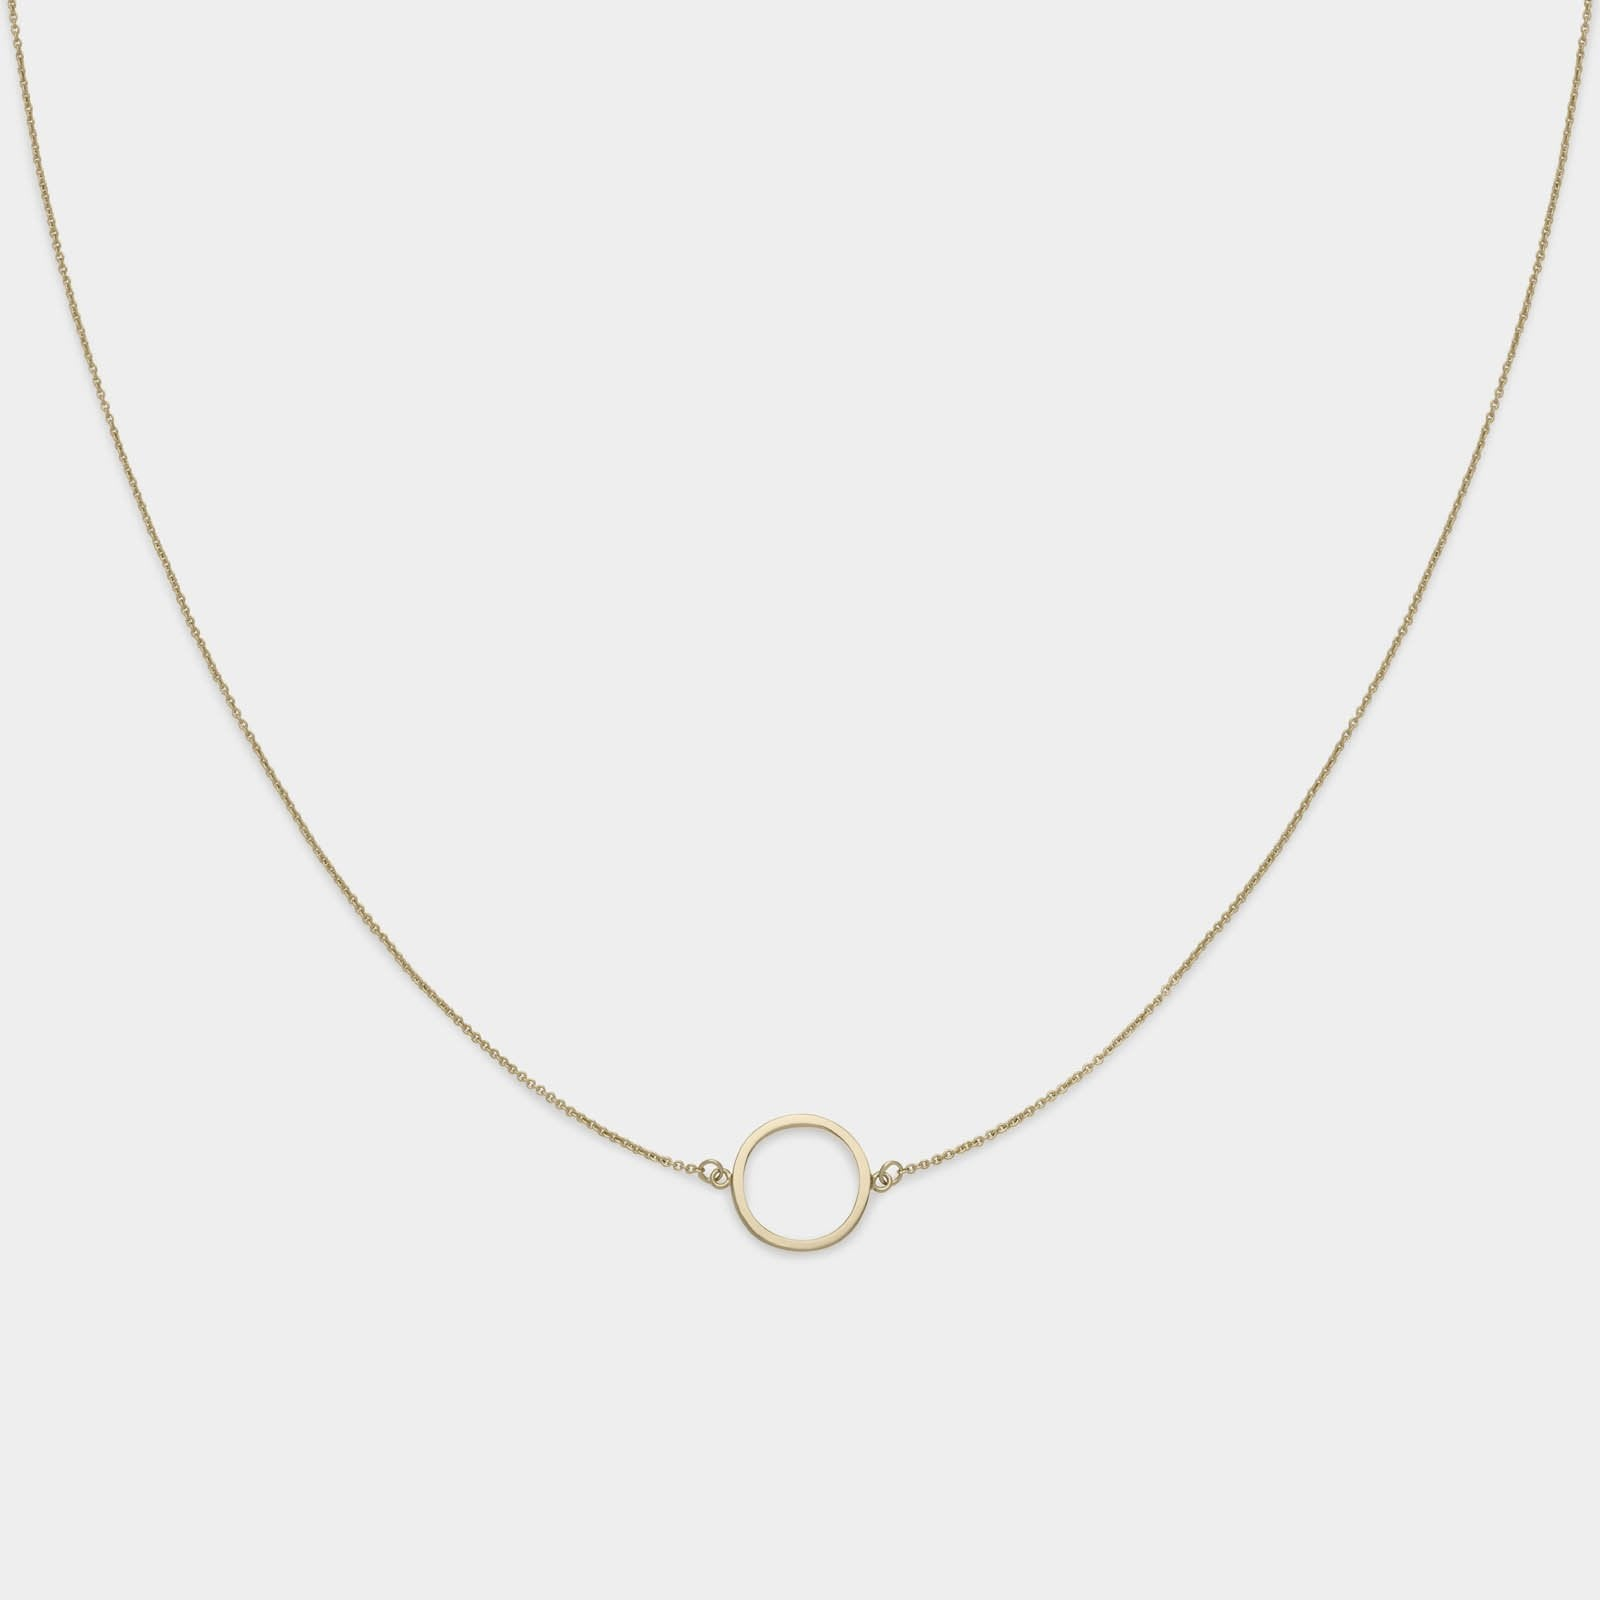 CLUSE Essentielle Gold Open Circle Choker Necklace CLJ21002 - necklace